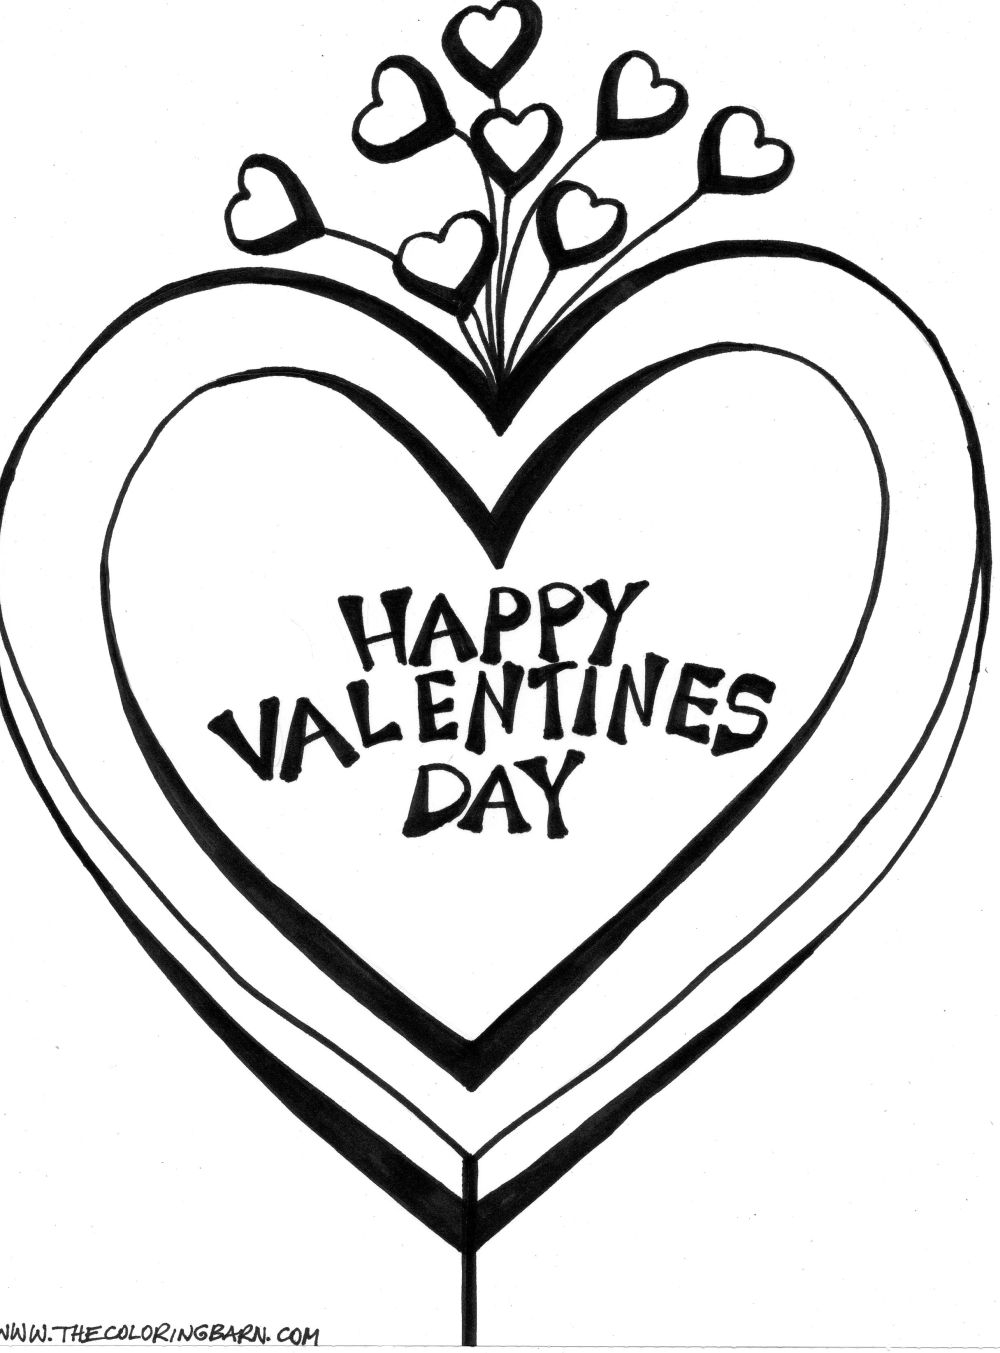 Valentines Day Coloring Pages Collection Of I Love You Free Valentines S0189 Coloring Pages Printable Collection